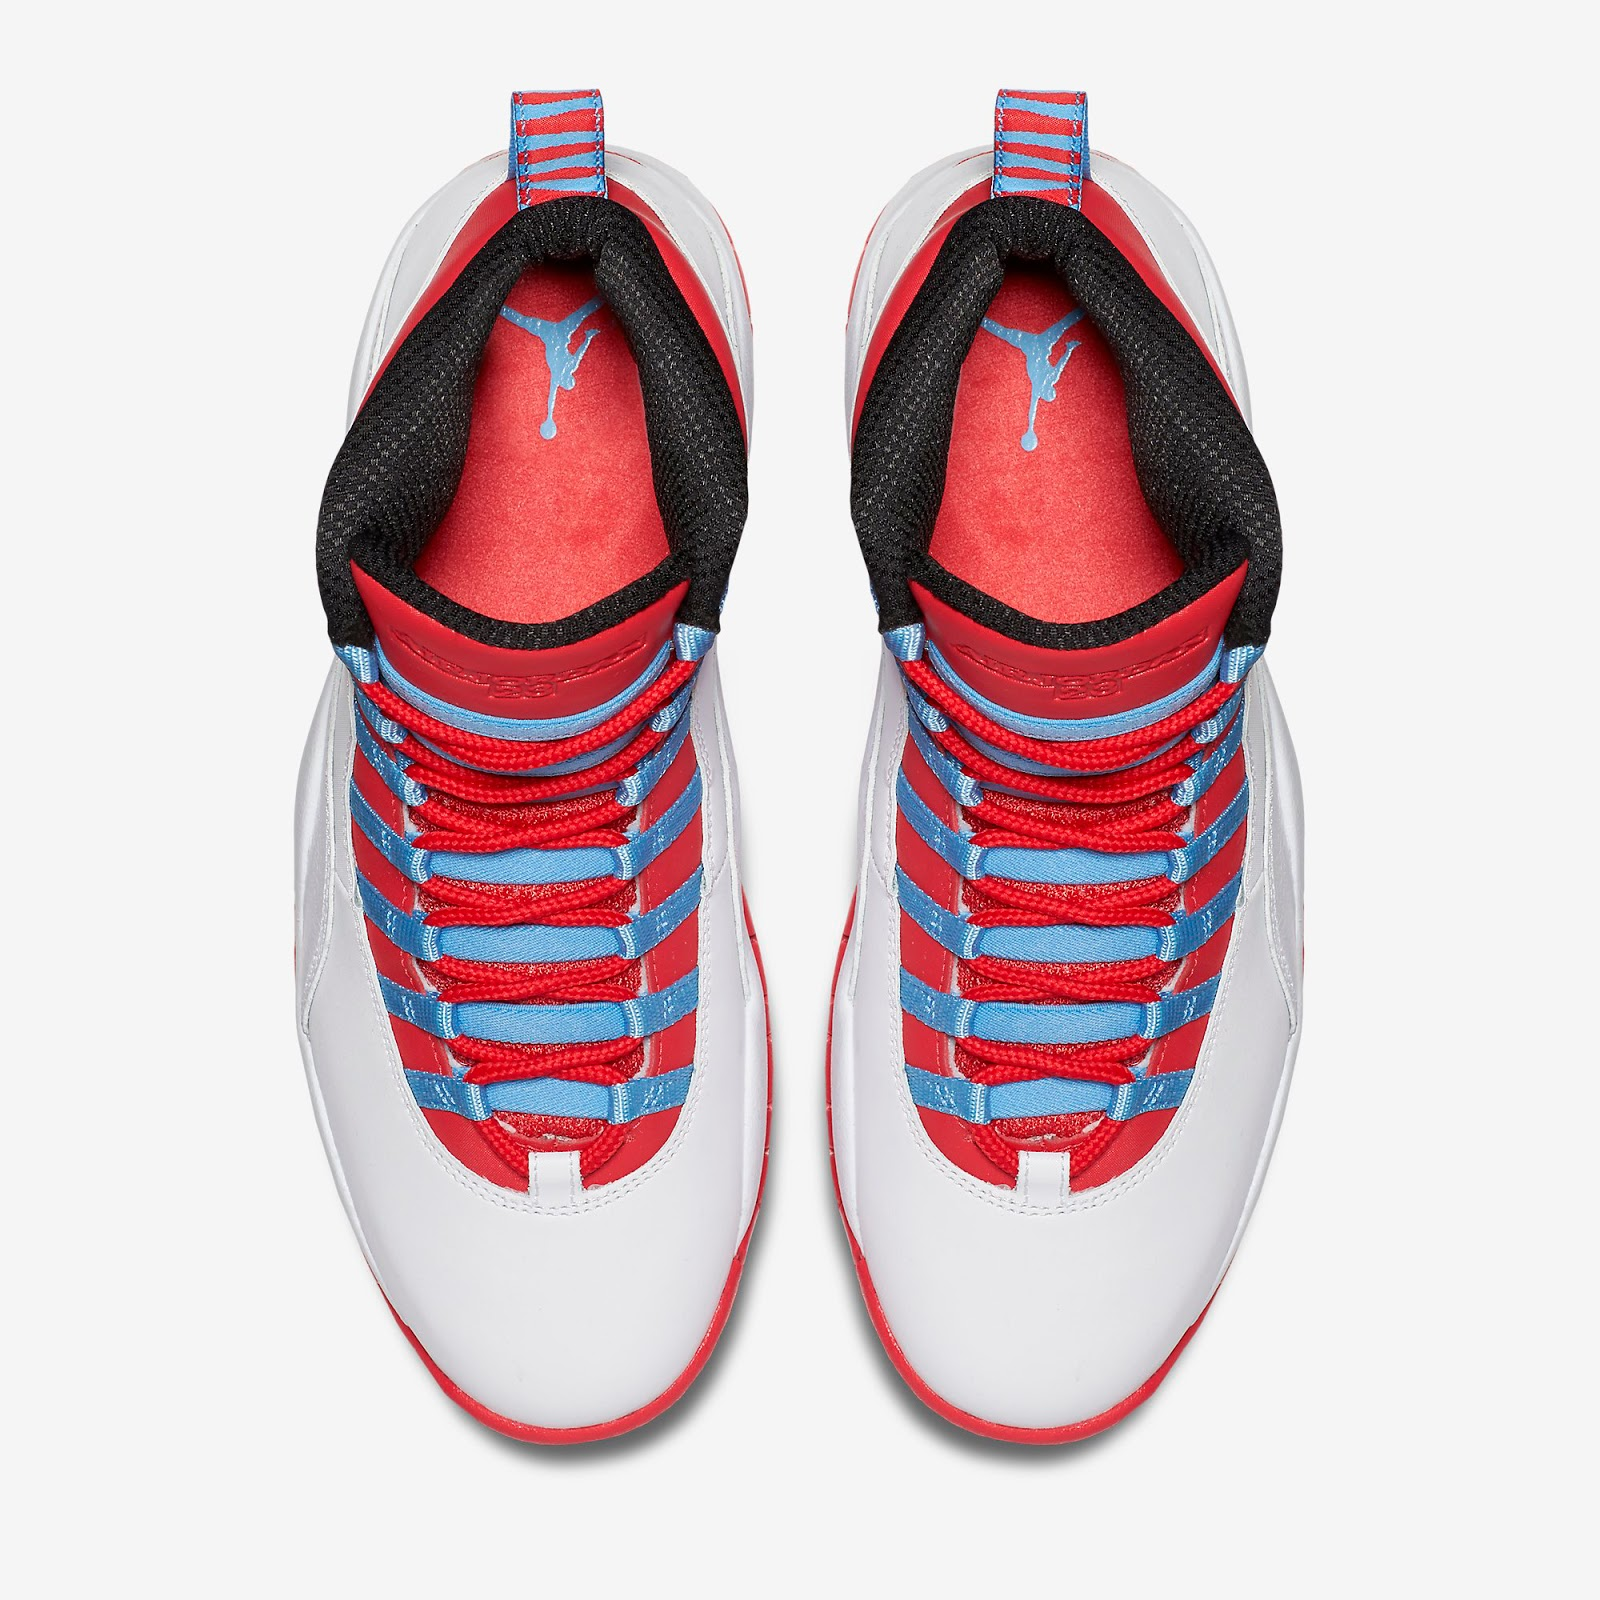 7f225a34c98f ... ajordanxi Your 1 Source For Sneaker Release Dates Air Jordan 10 ...  Cheap 2016 Air Jordan 10 Chicago Flag White Light Crimson-University Blue .  ...